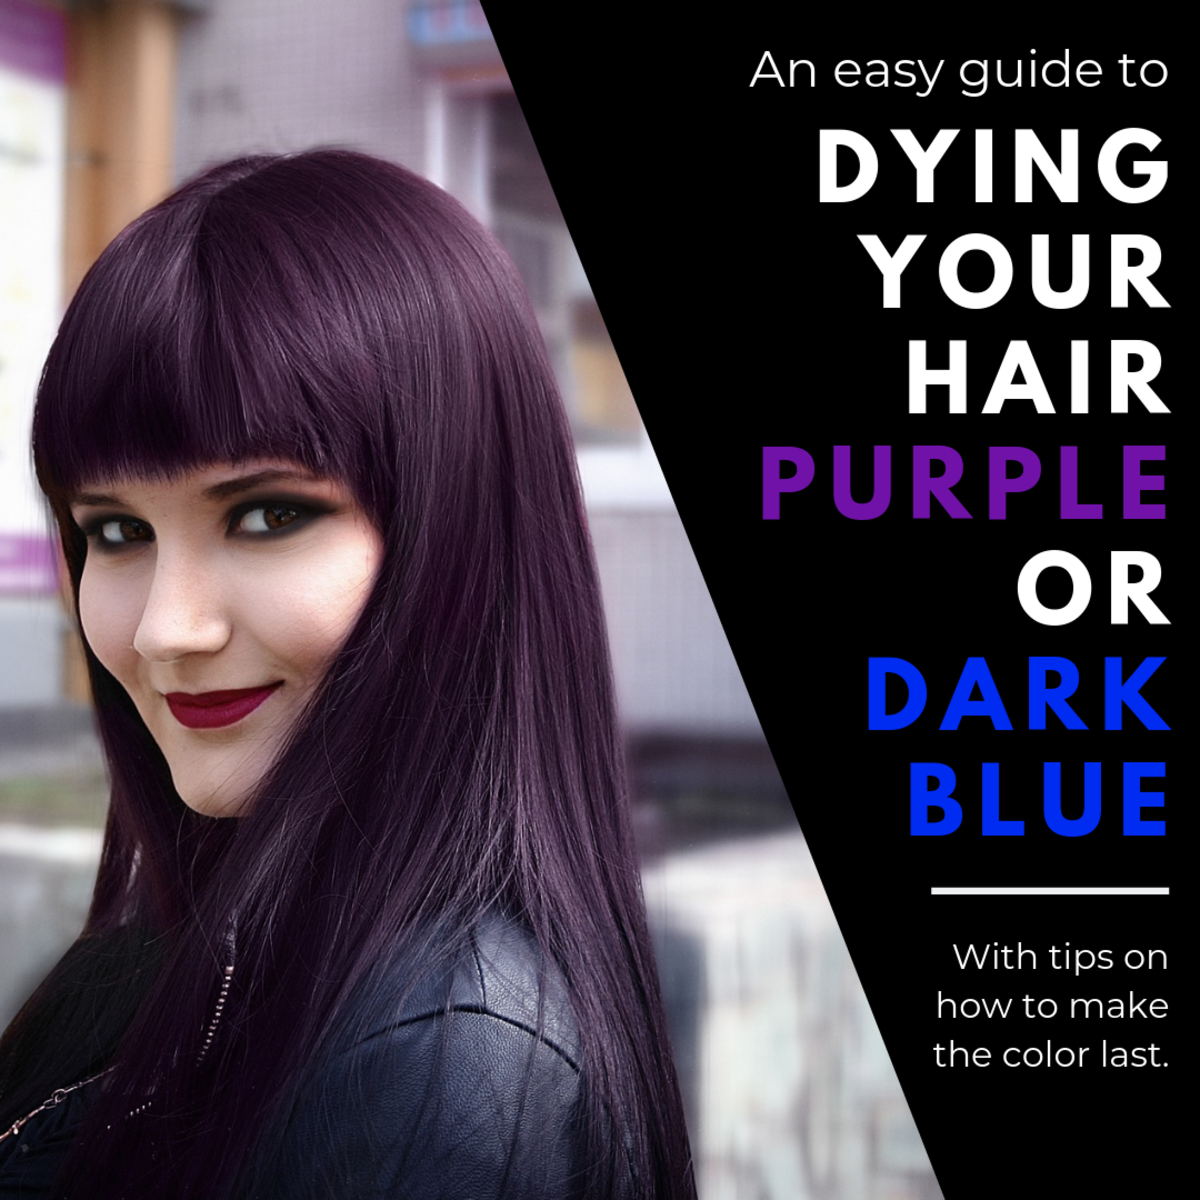 This article will guide you through the process of dying your hair purple or dark blue, complete with plenty of photos along the way.